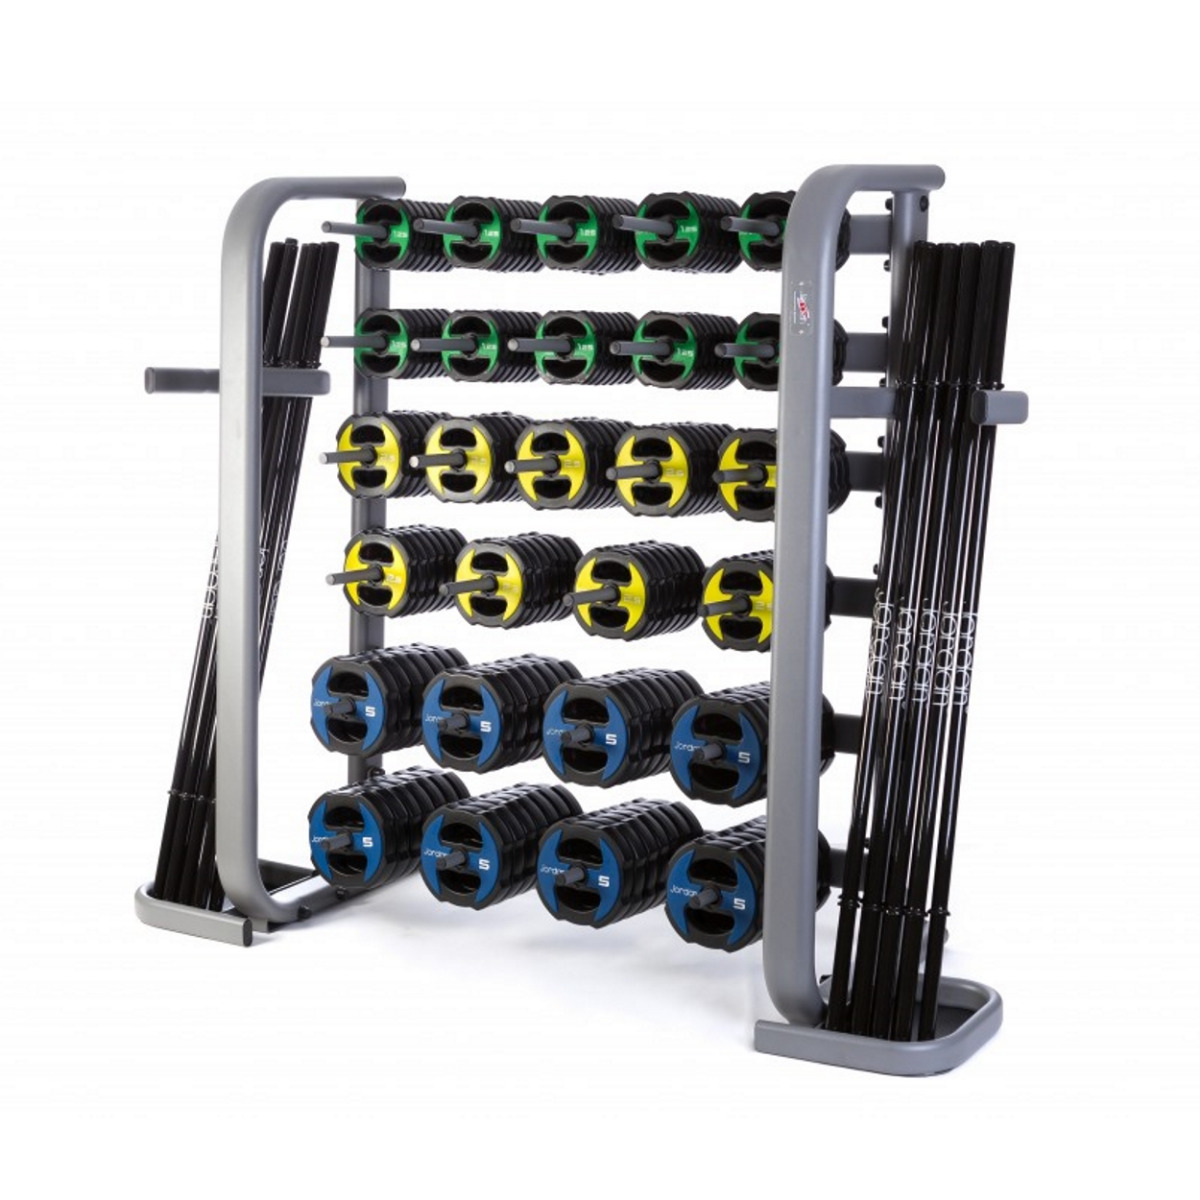 30 x Jordan Ignite V2 Urethane Studio Barbell Sets & Rack - Colour Coded